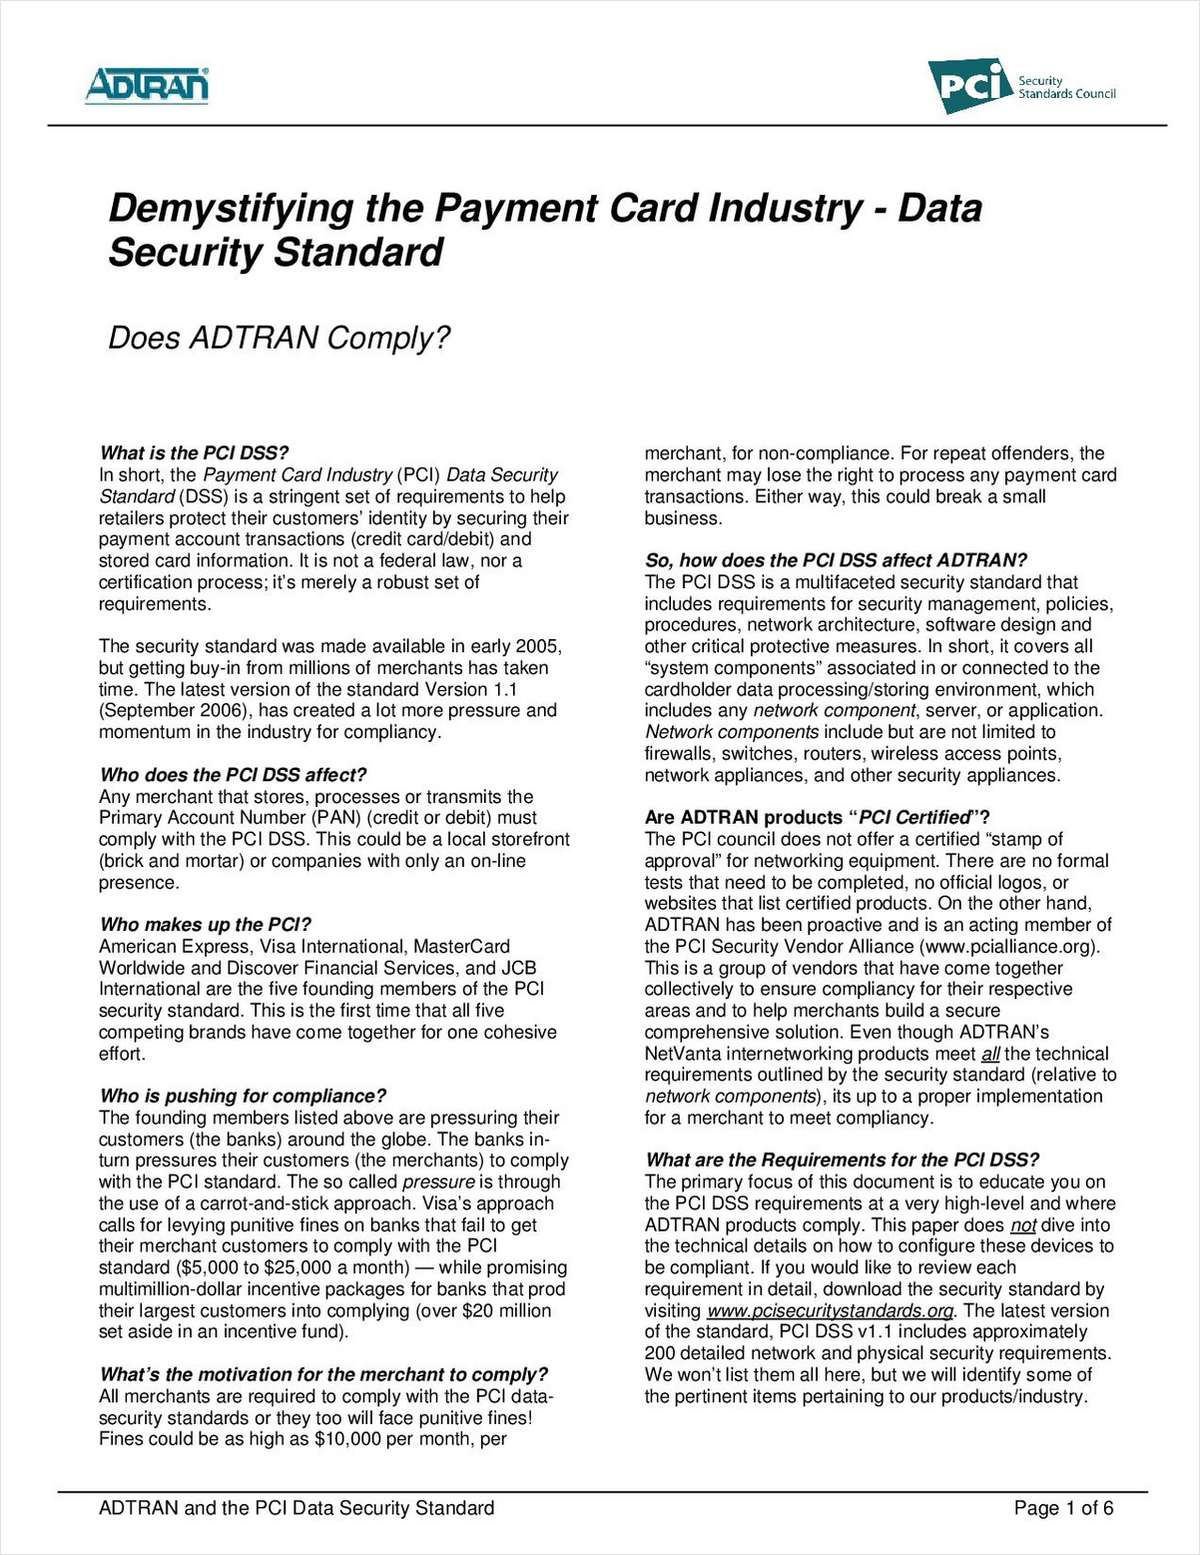 Demystifying the Payment Card Industry – Data Security Standard